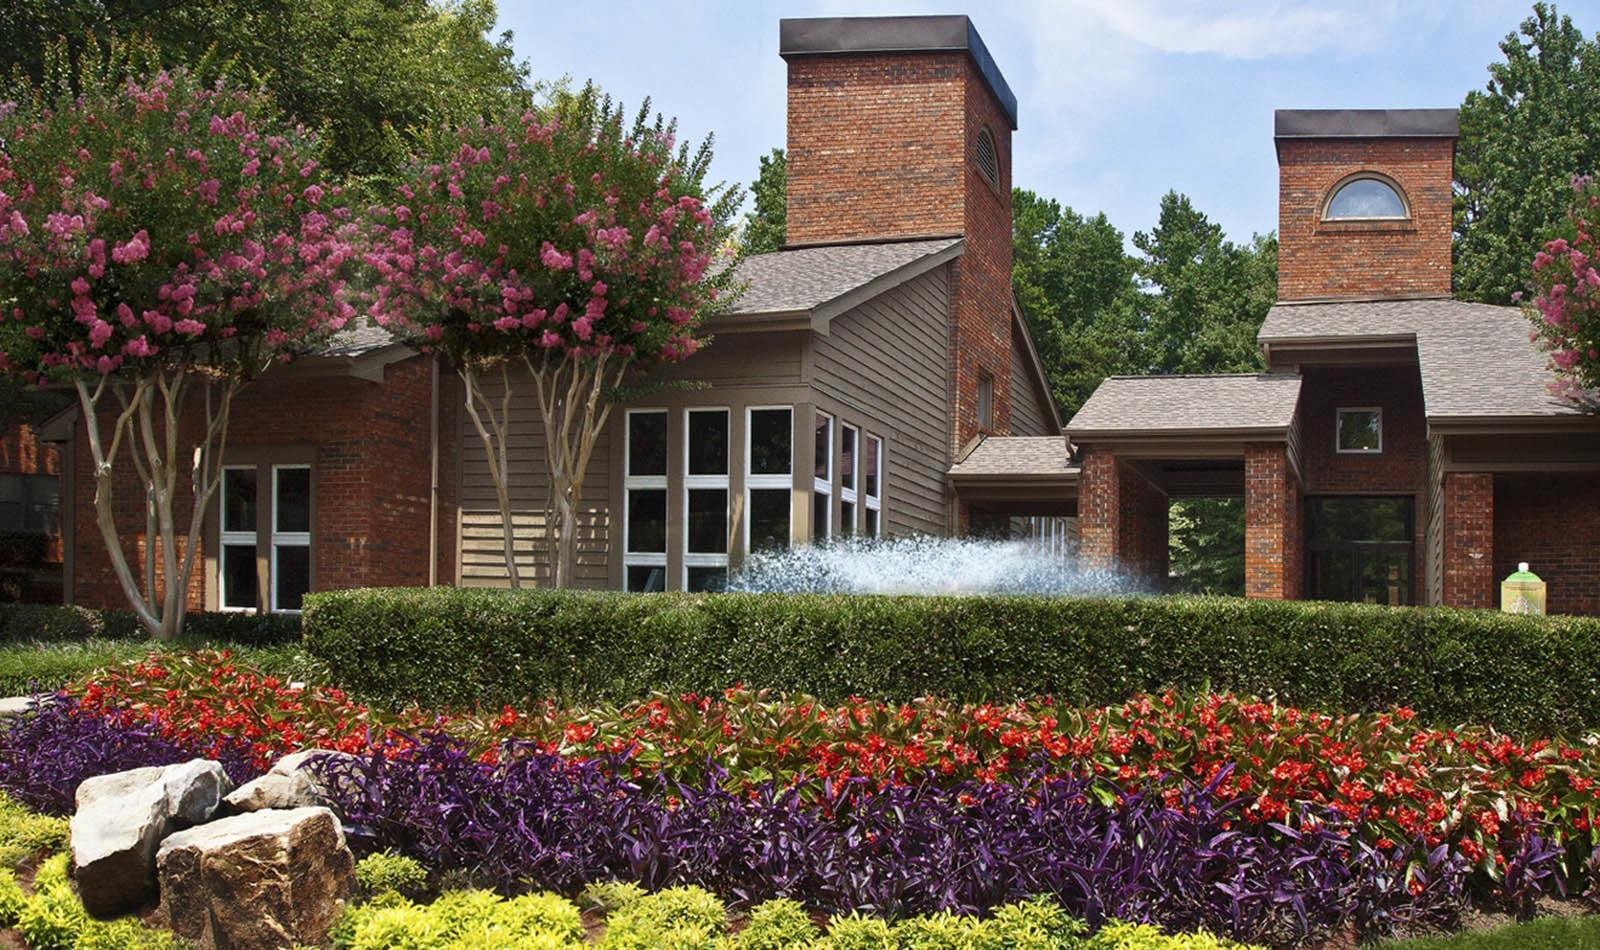 Landscaping Near Leasing Office at Paces Pointe in Matthews, NC